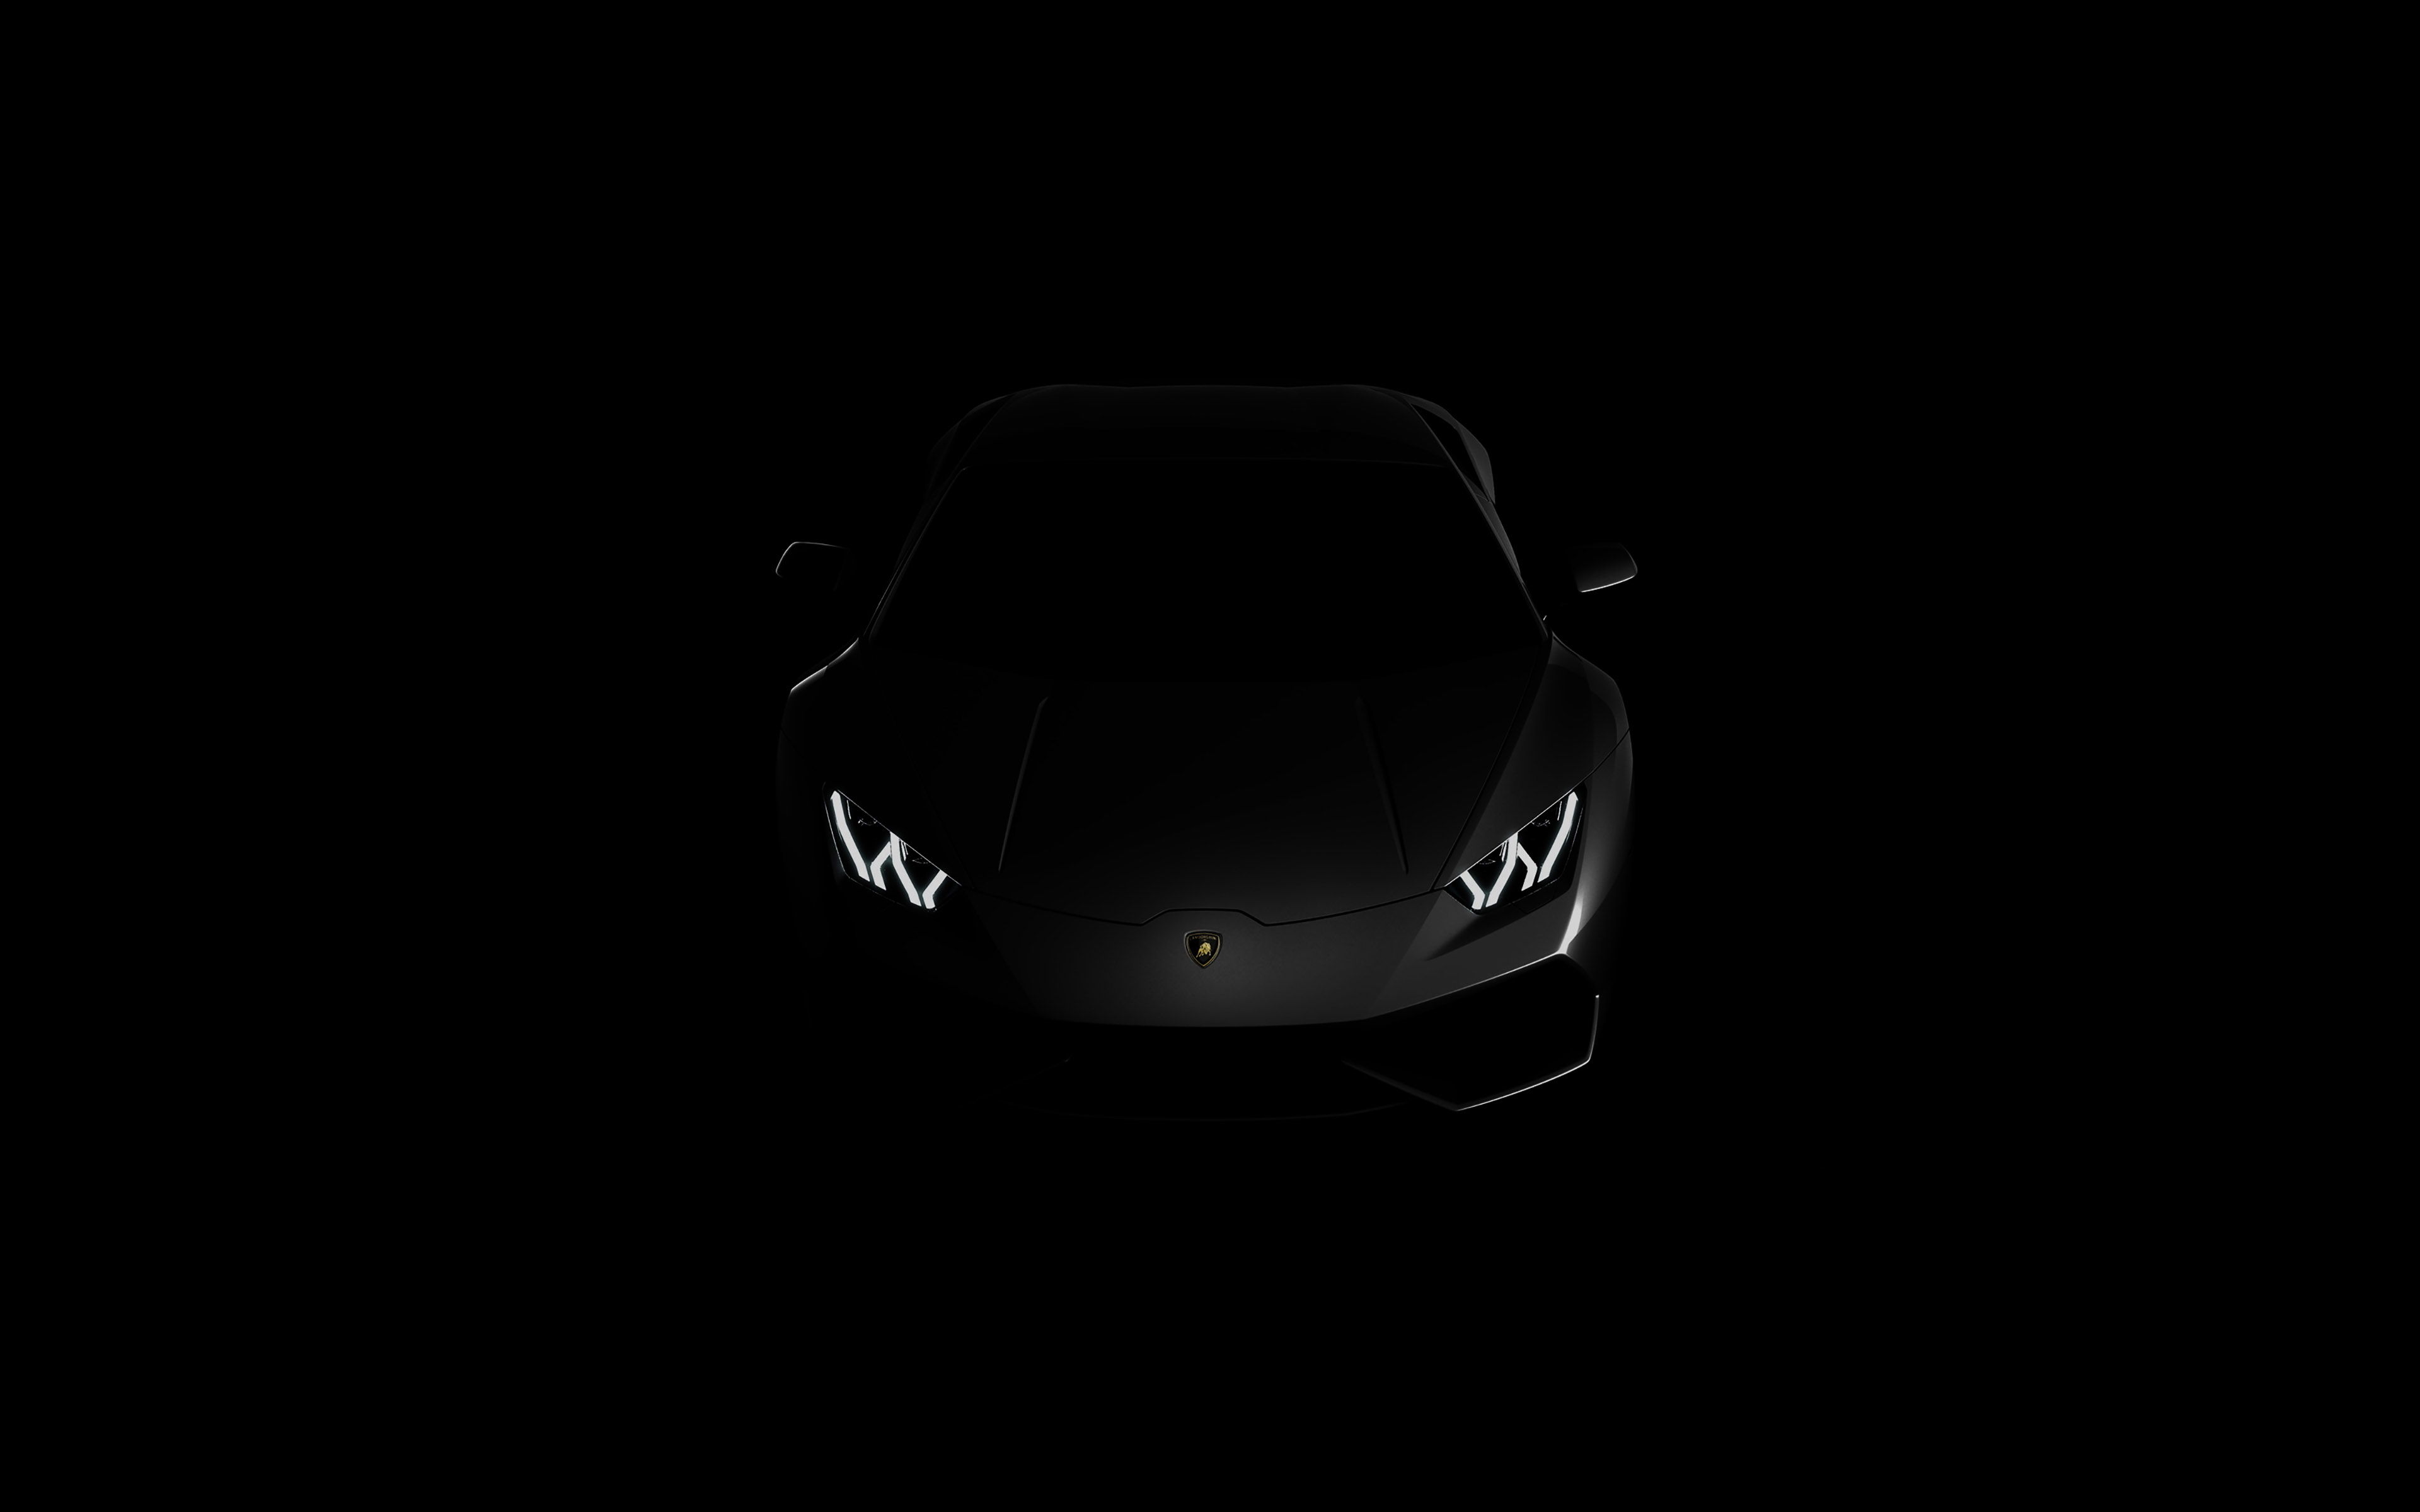 Fall Desktop Wallpaper 2500x1600 Af29 Lamborghini Huracan Lp Black Dark Papers Co